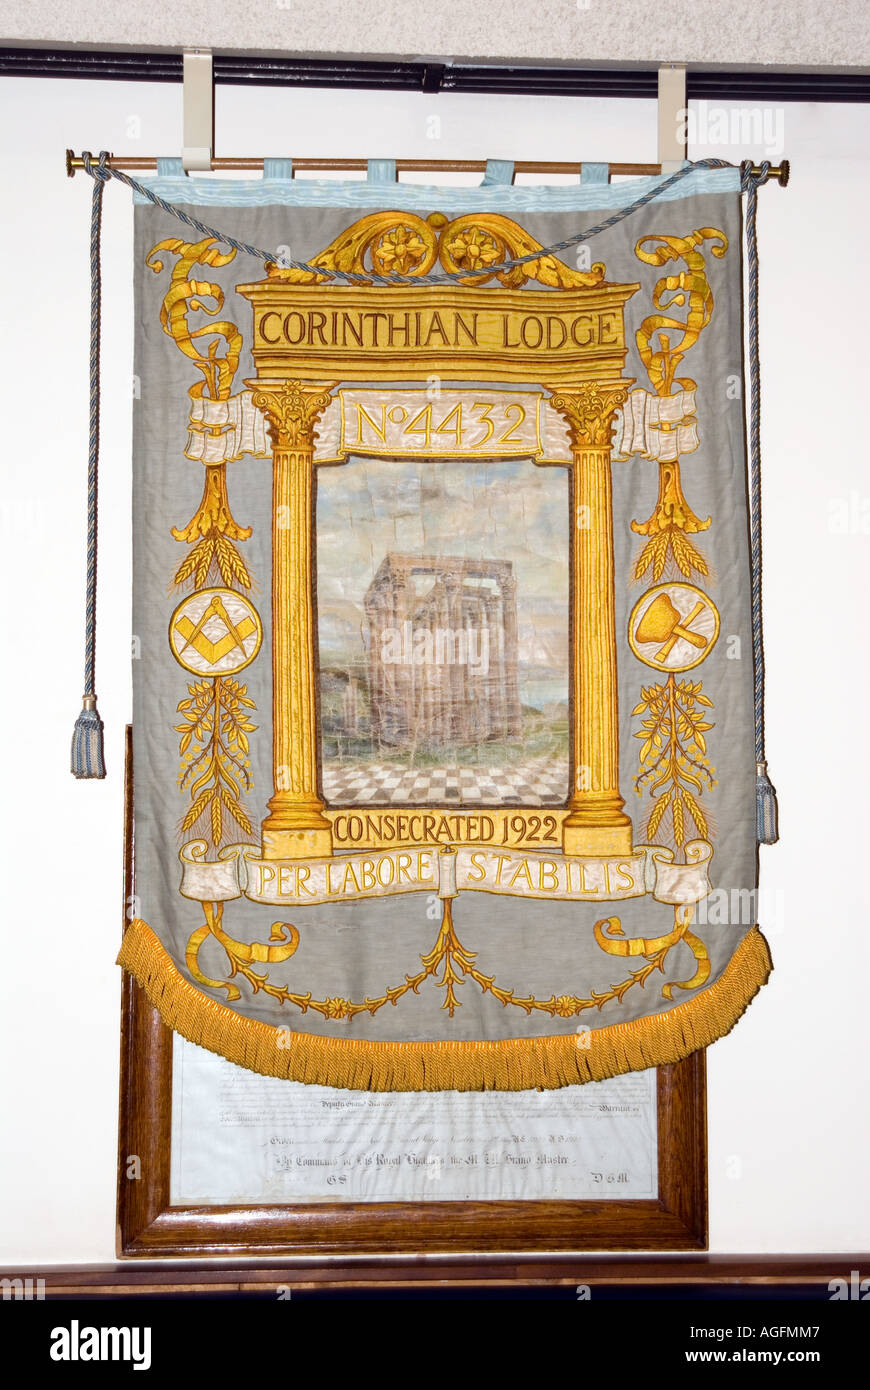 banner hanging Inside a Corinthian masonic lodge 1922 - Stock Image